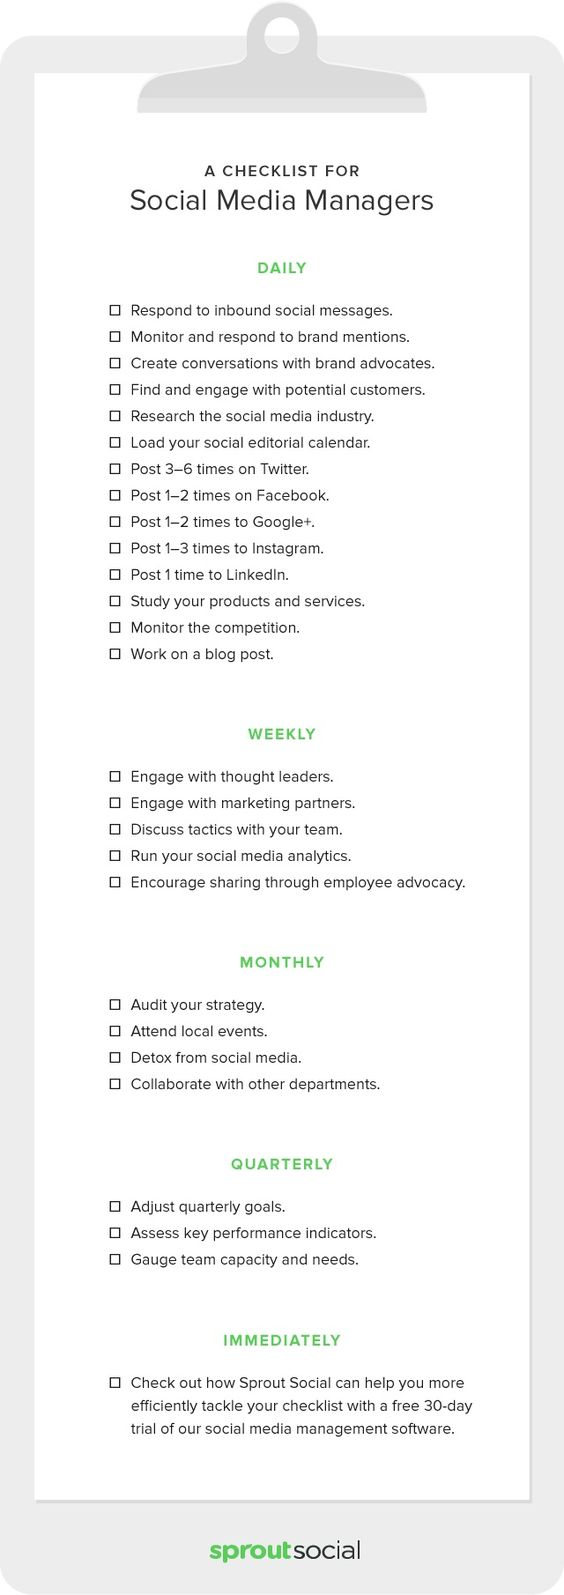 To-Do List for Social Media Managers [INFOGRAPHIC] | Social Media Today #socialmedia #infographic